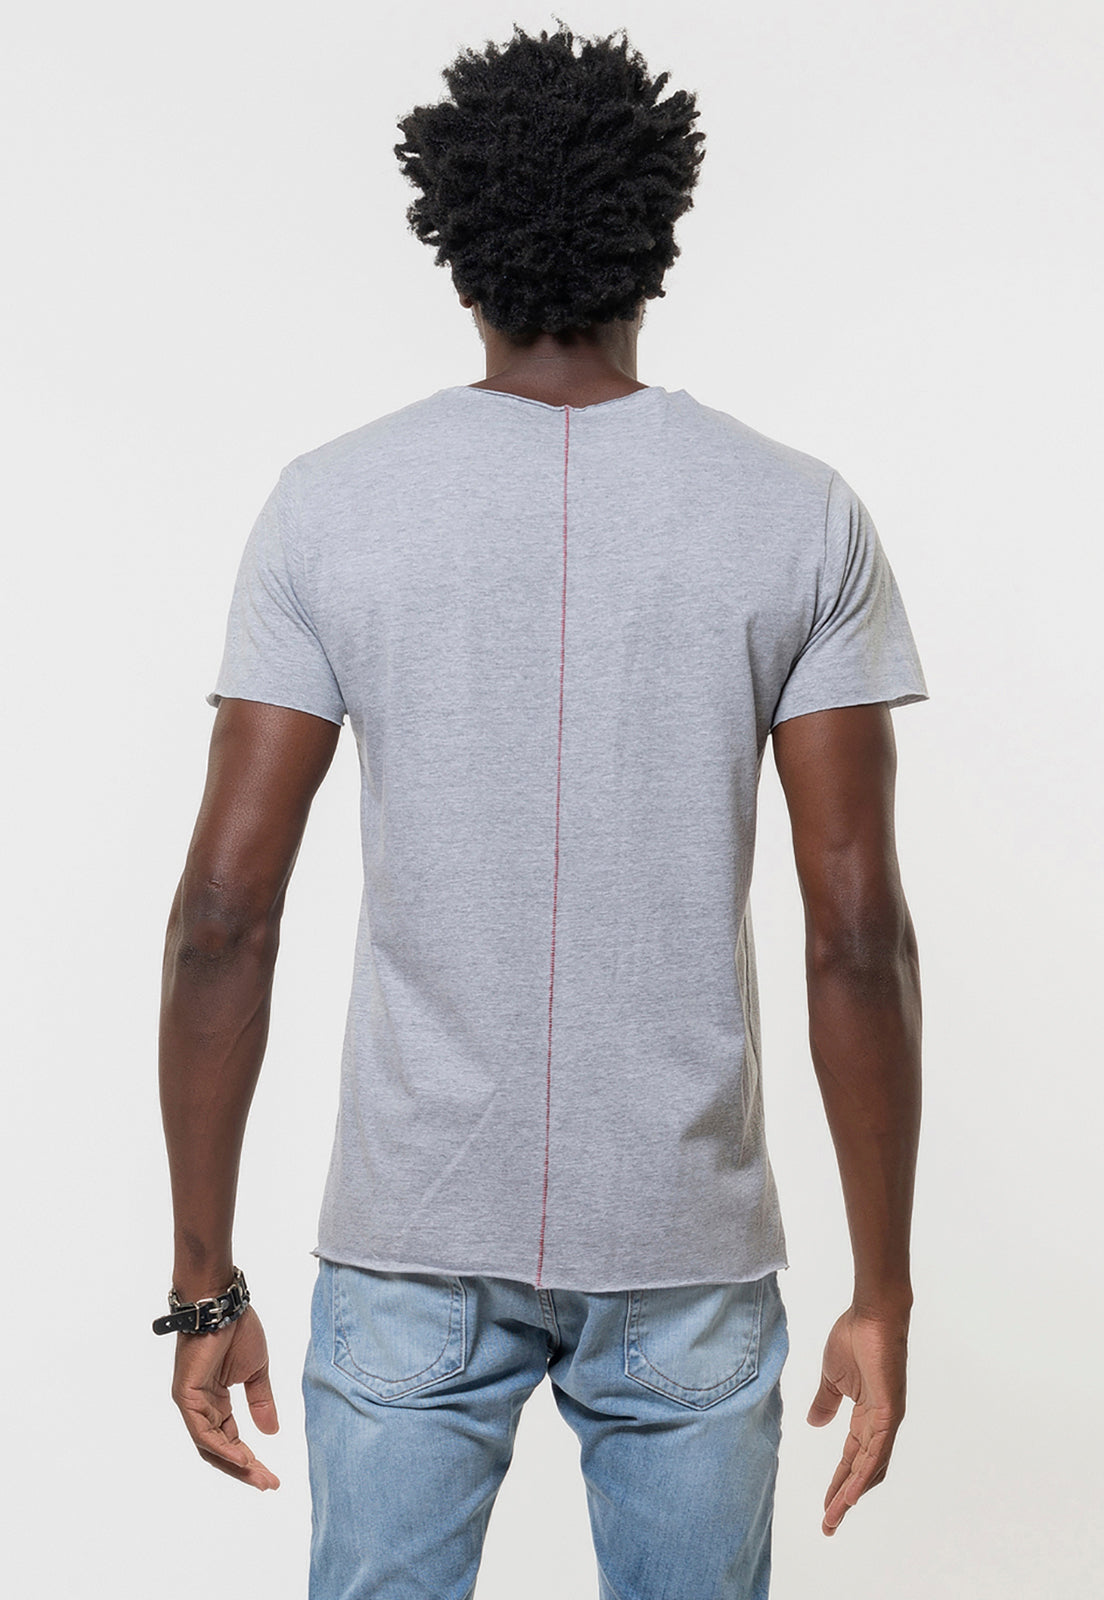 CAMISETA MASCULINA CORTE A FIO - SURF SOUL DTG